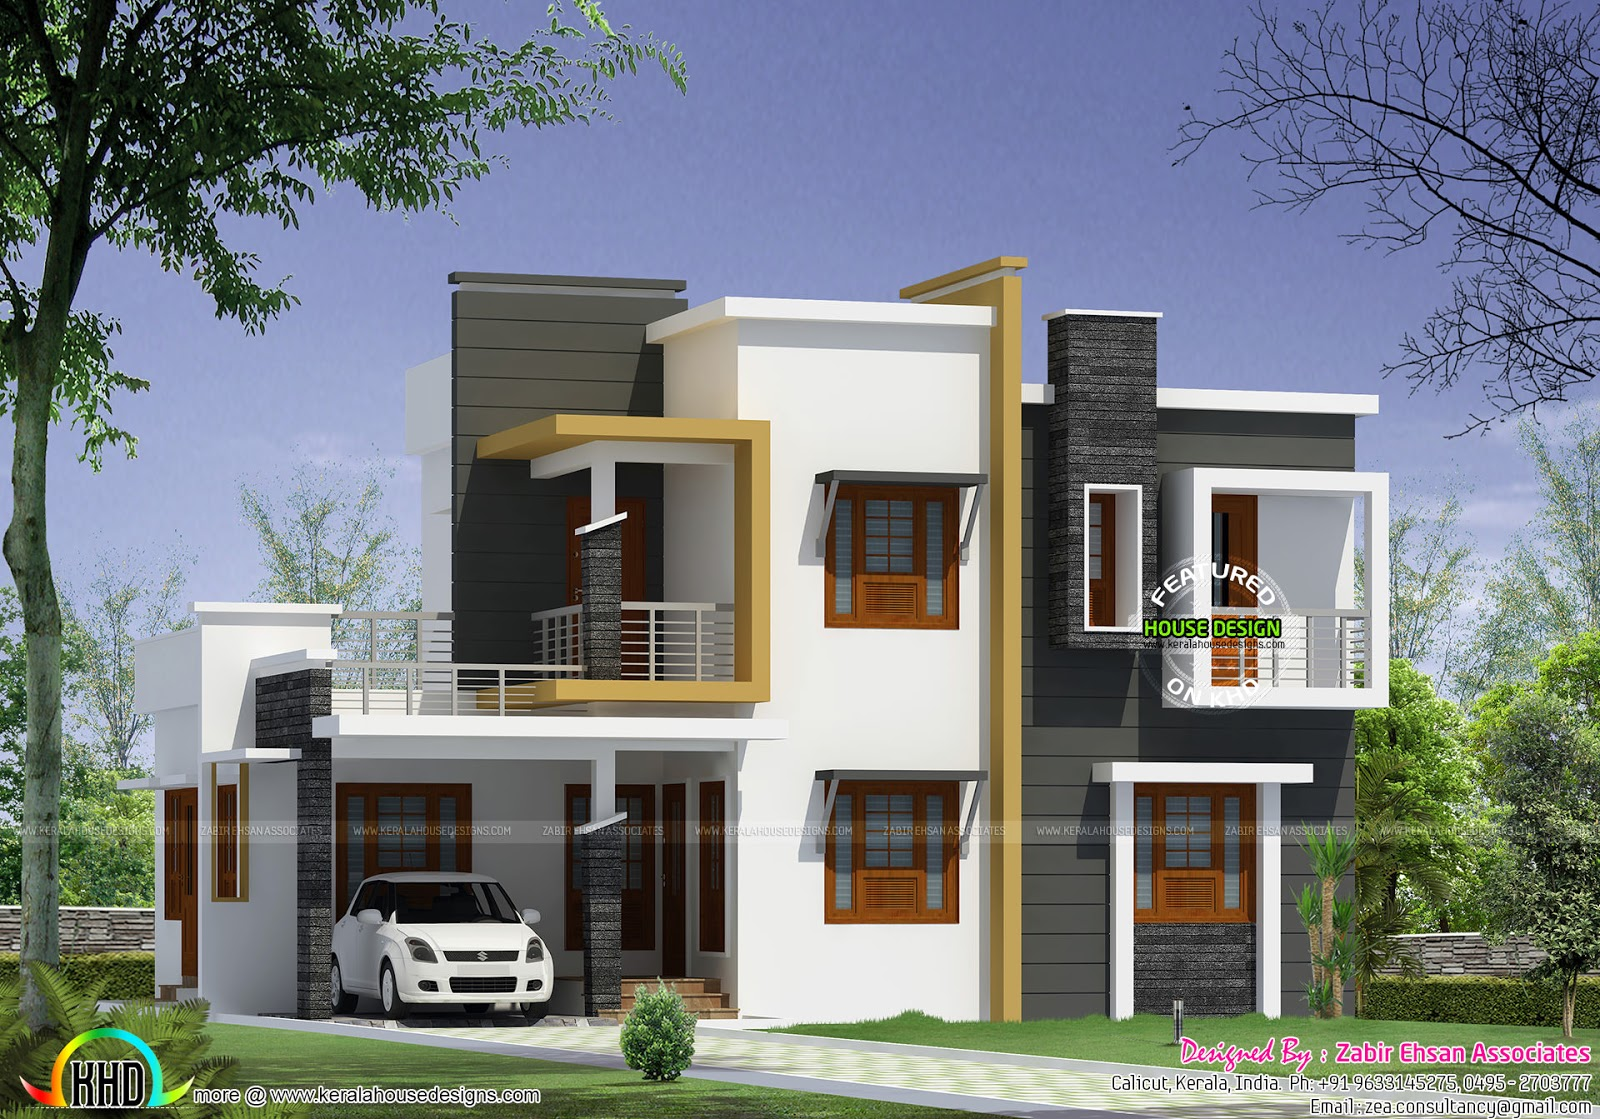 Box type modern house plan kerala home design and floor for Online architecture design